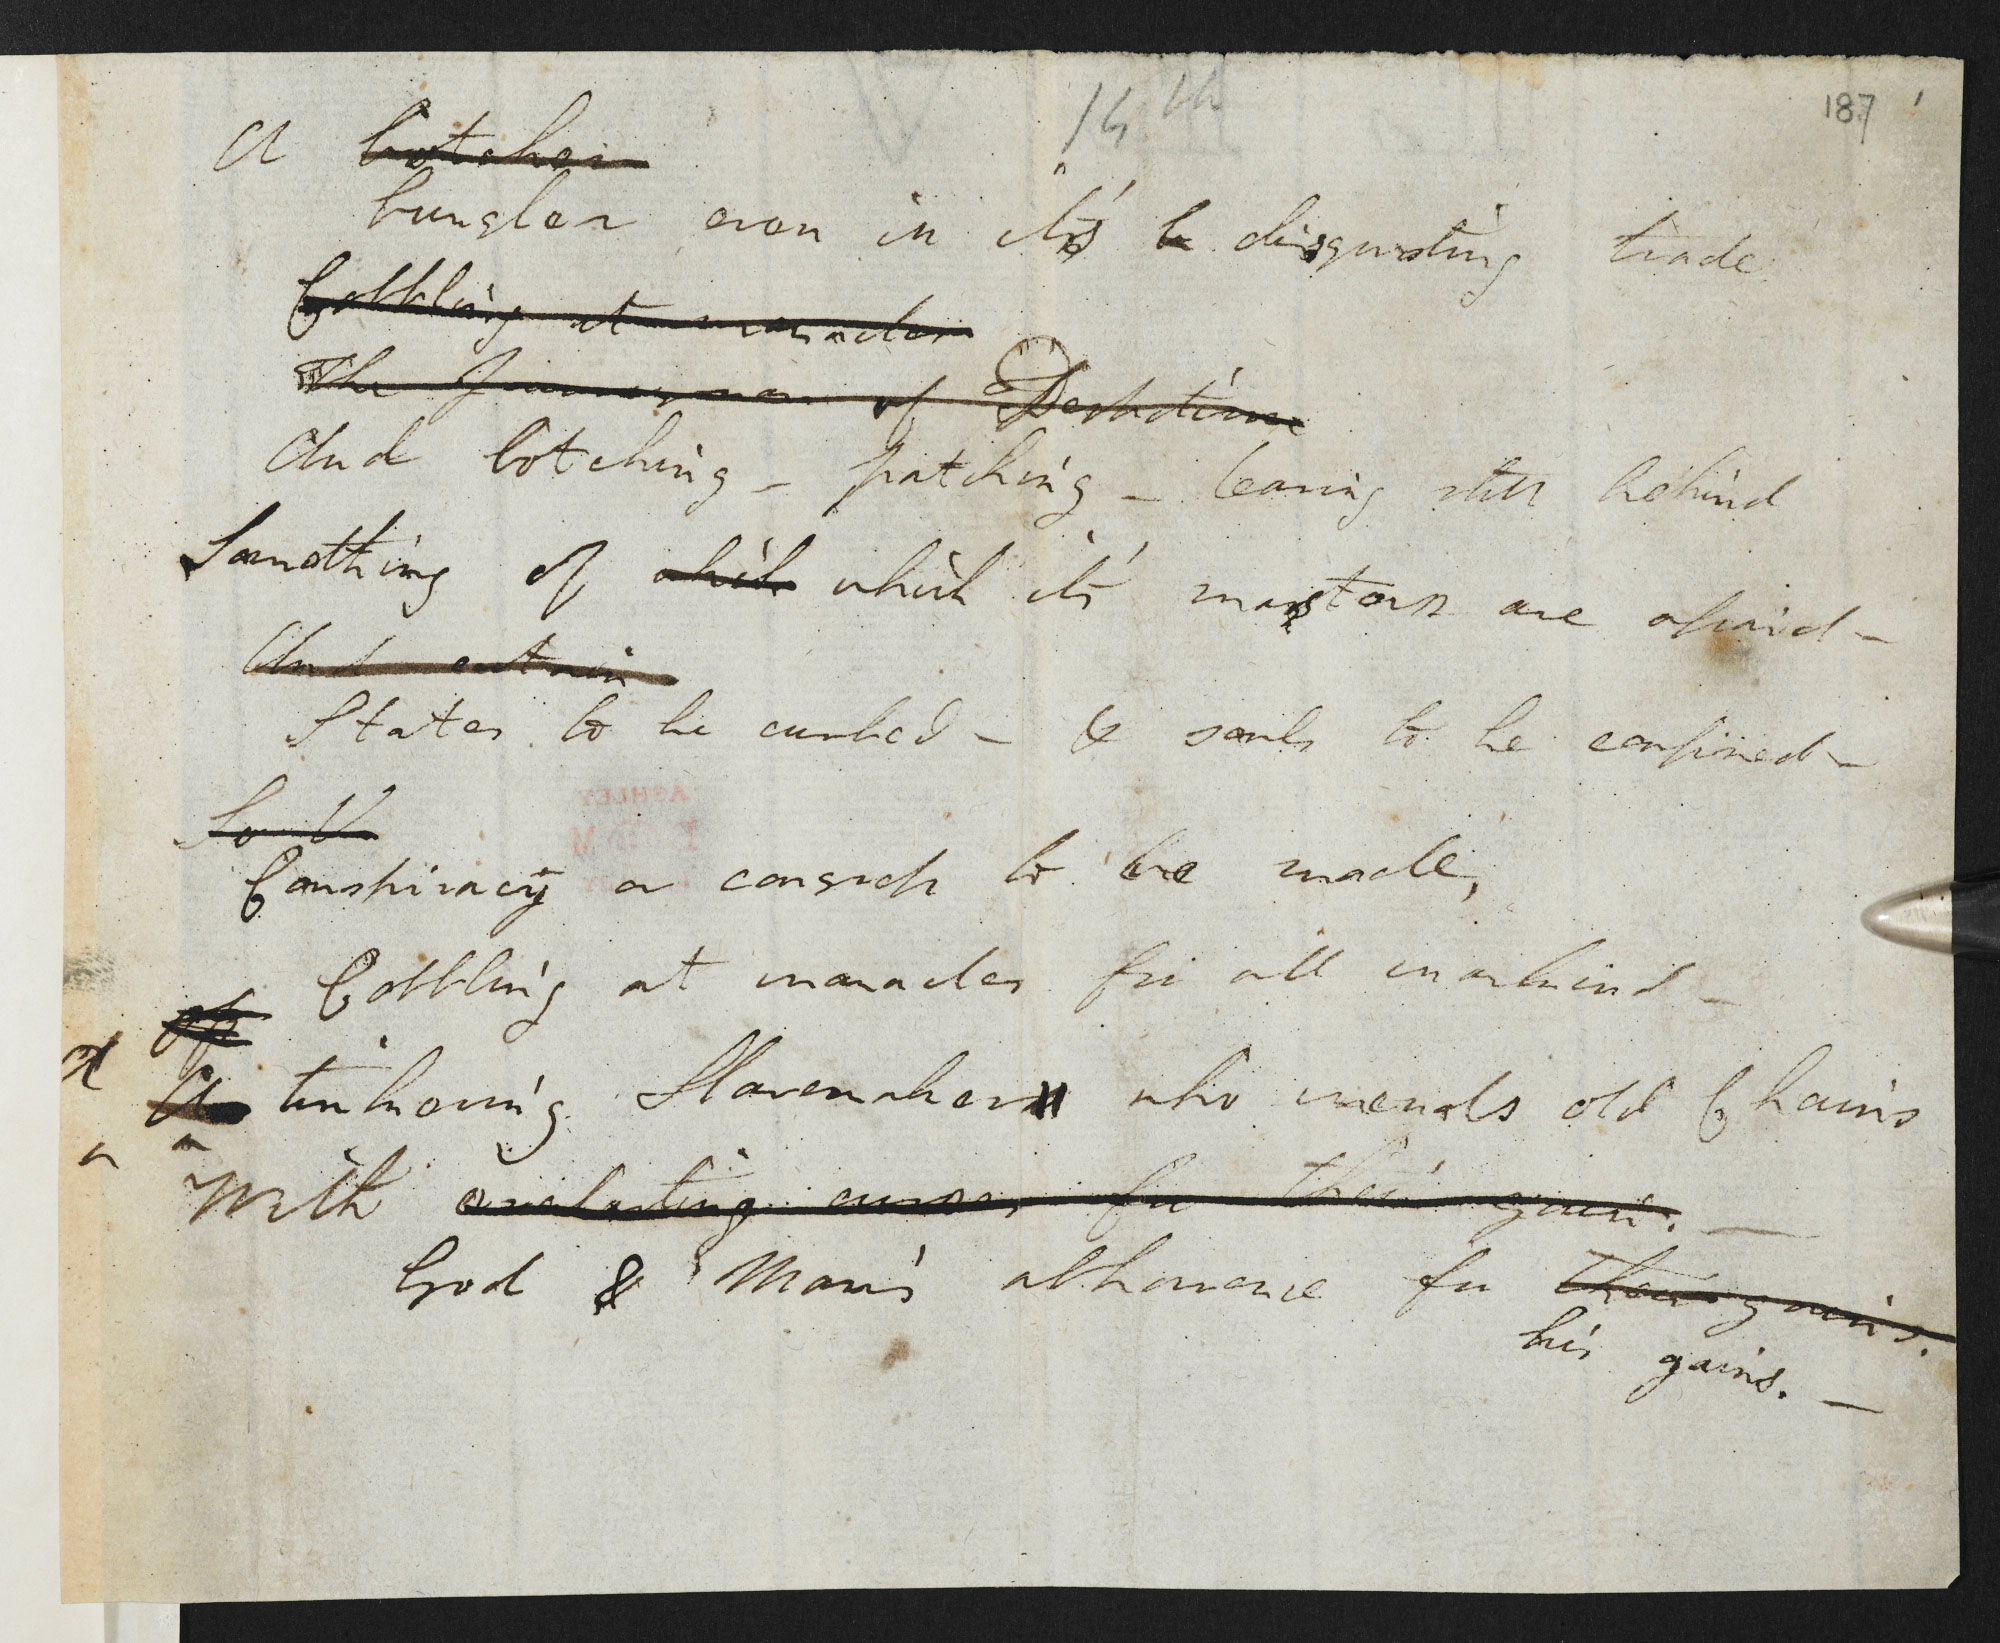 Manuscript draft of the Dedication and Canto I of Don Juan by Lord Byron